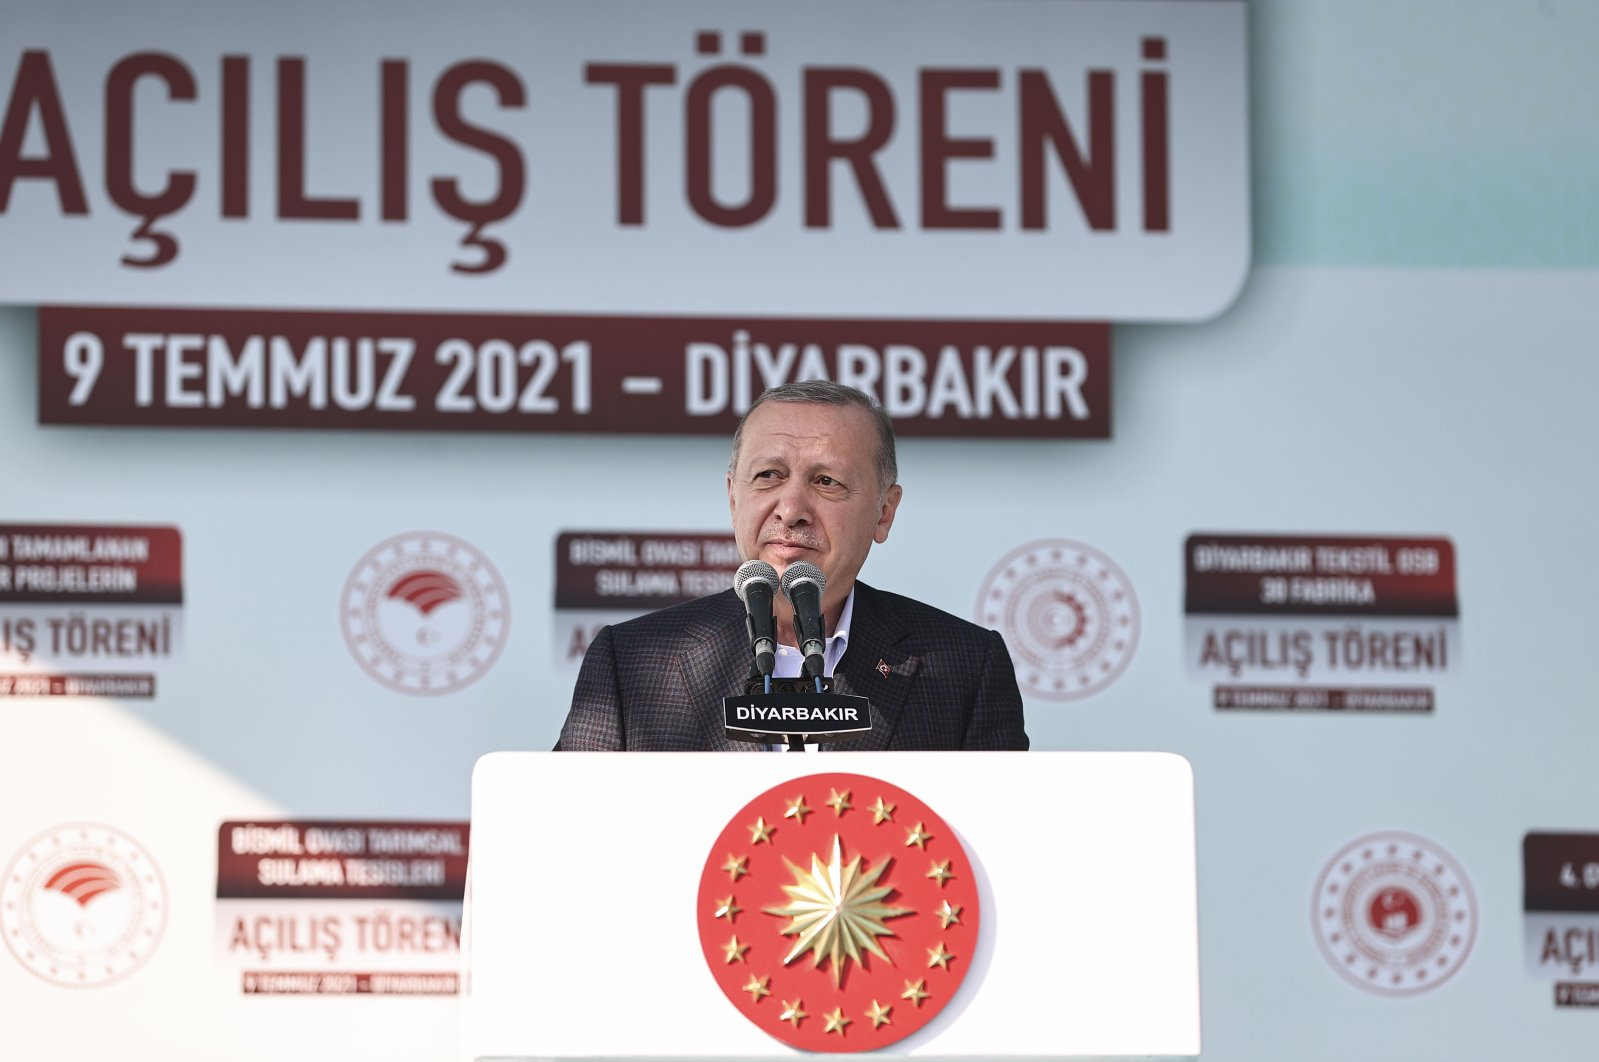 Turkish President Recep Tayyip Erdoğan speaks at the inauguration ceremony of an irrigation system and 30 factories in Diyarbakır, Turkey, July 9, 2021 (AA Photo)